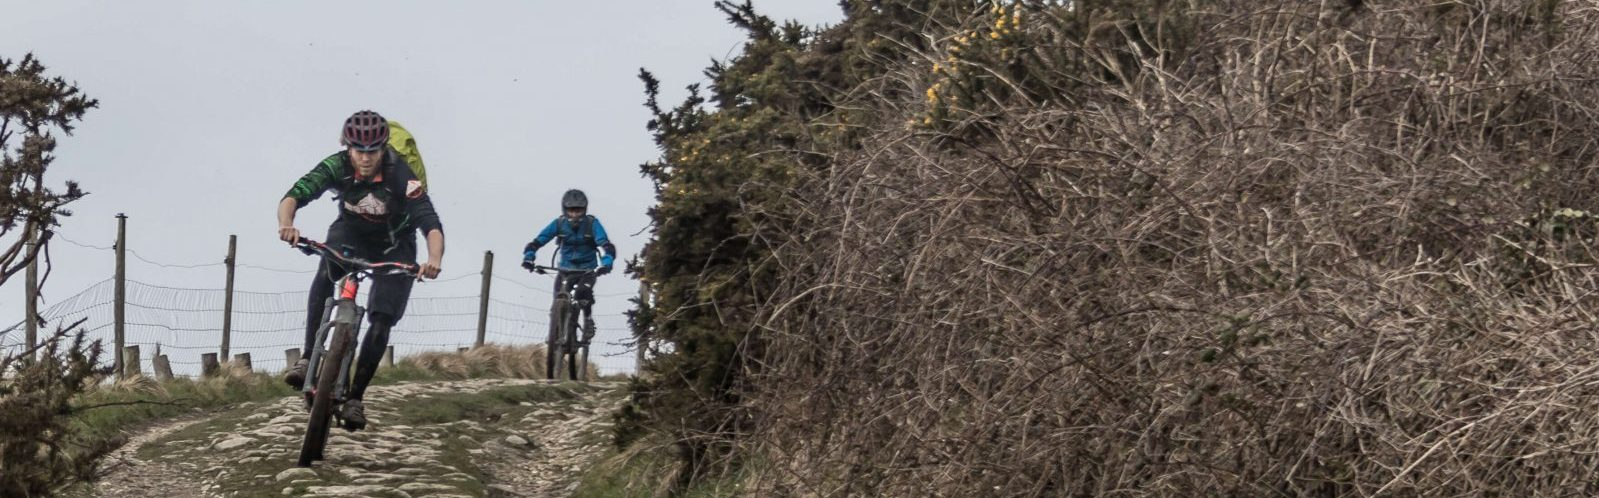 Corfe castle Isle of purbeck guided mtb rides